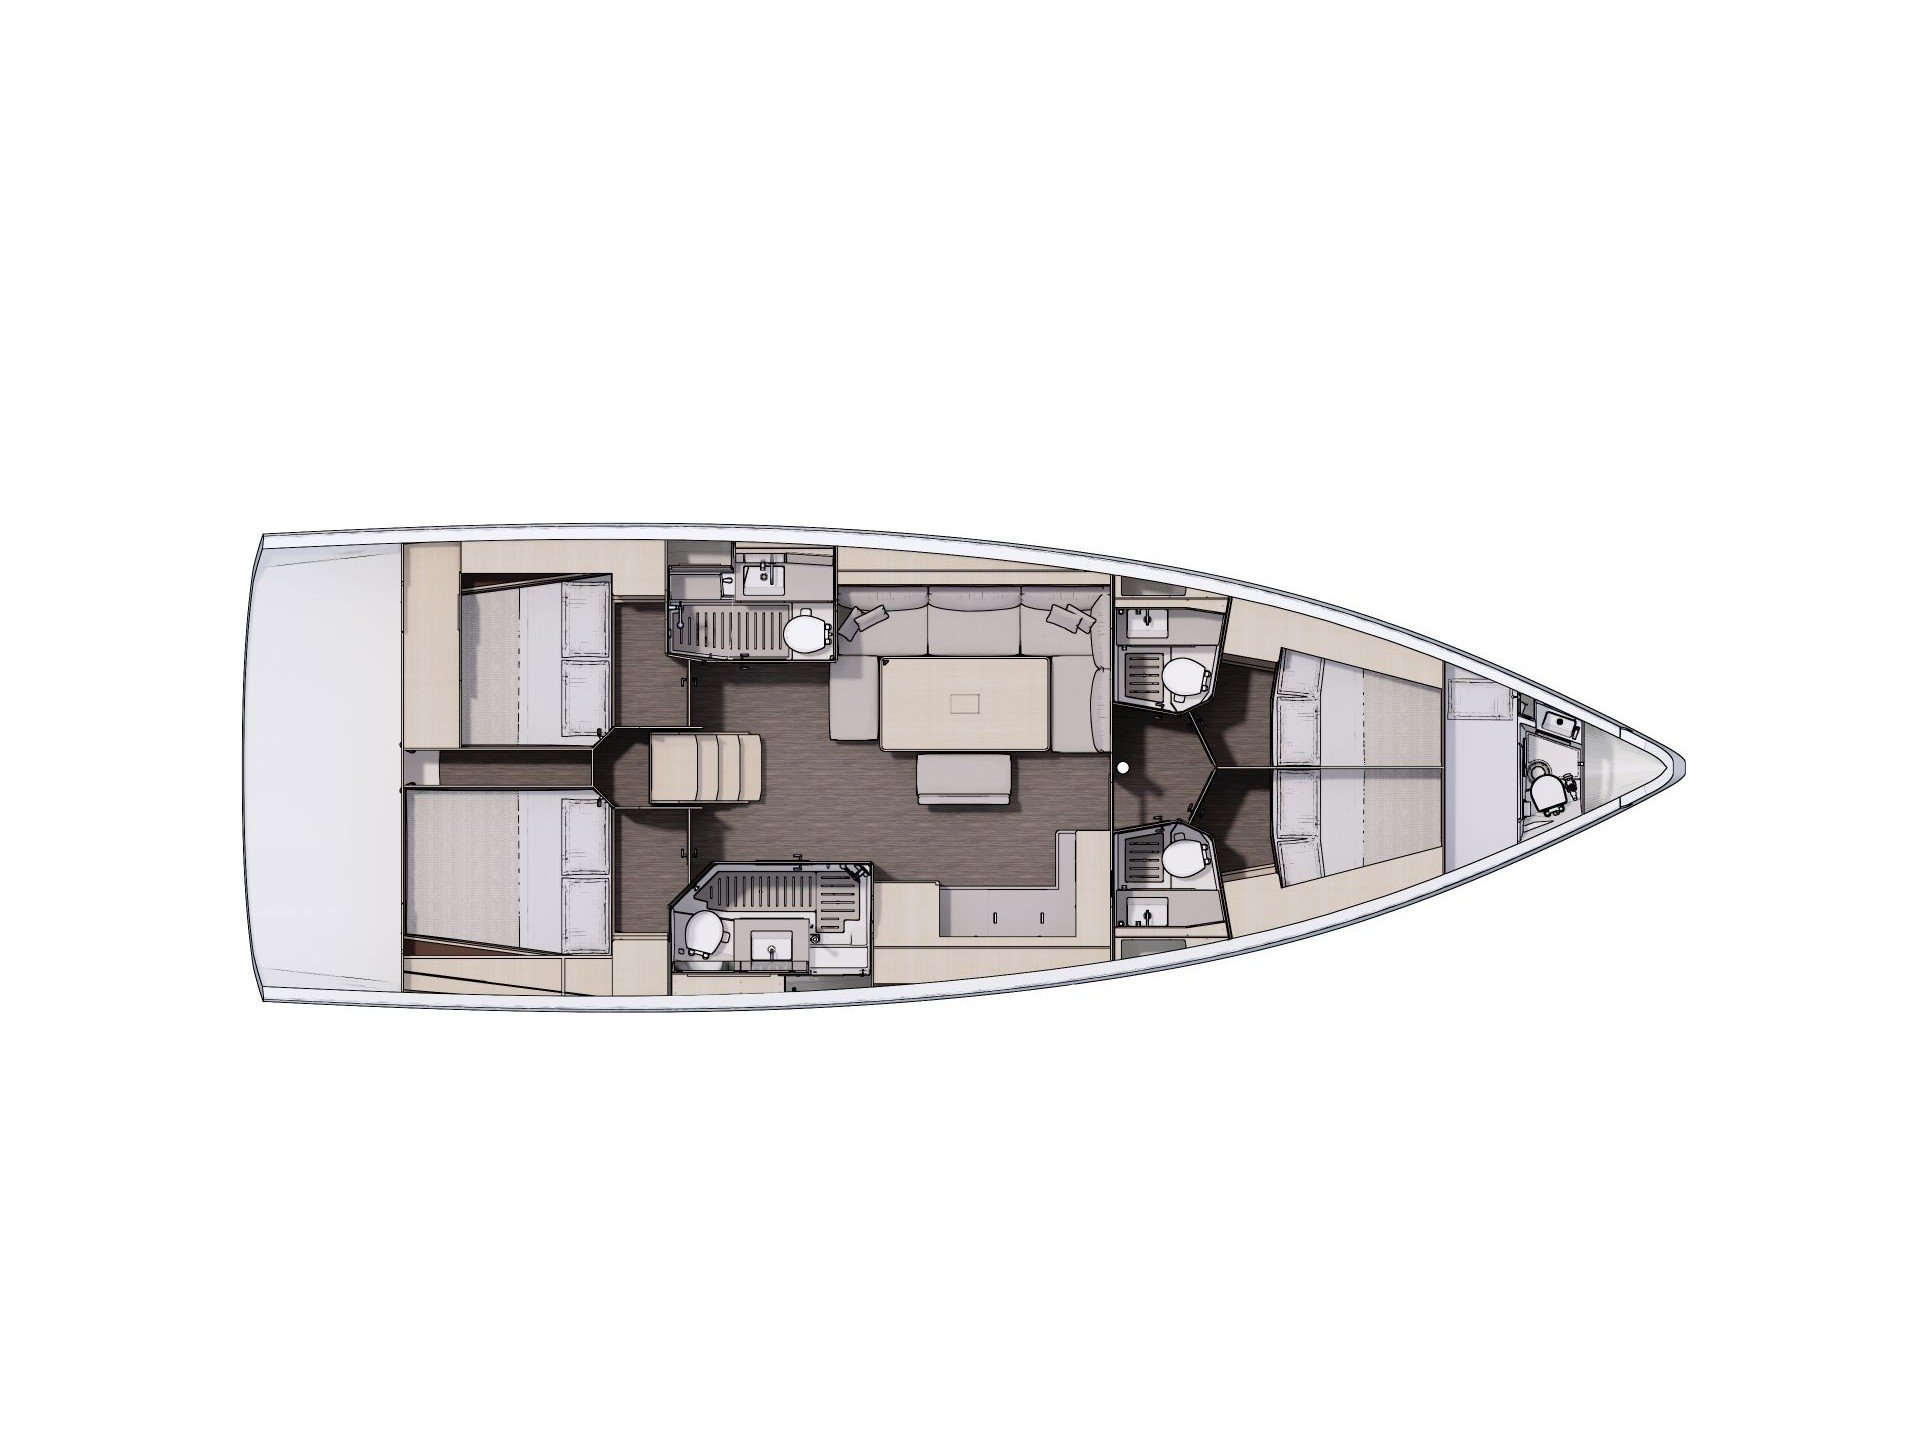 Dufour 470 (Ad Astra - Customized exclusive s/y) Plan image - 2